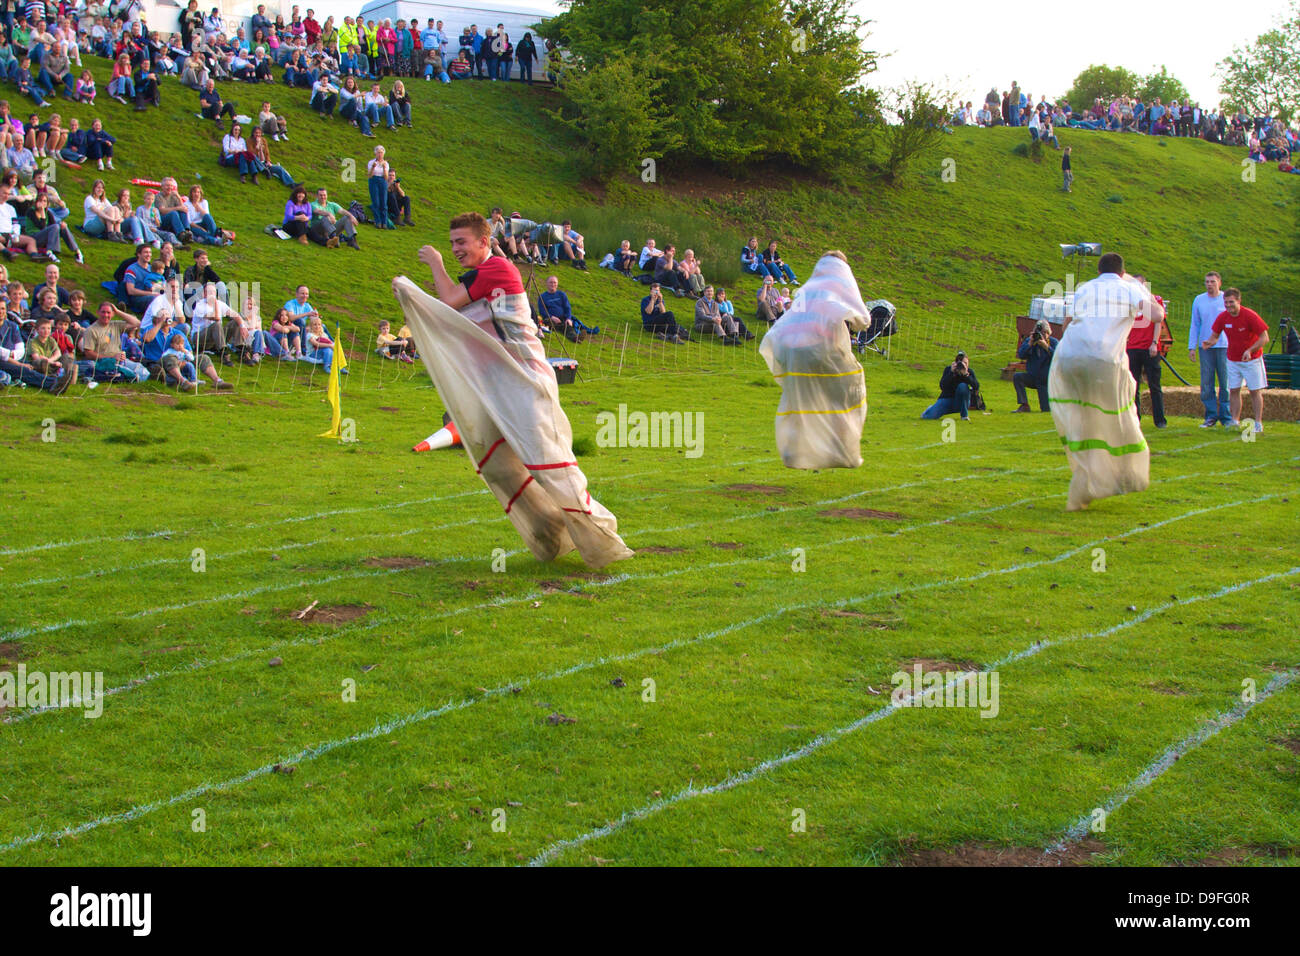 Robert Dover's Cotswold Olimpick Games, Chipping Camden, Gloucestershire, England, UK - Stock Image